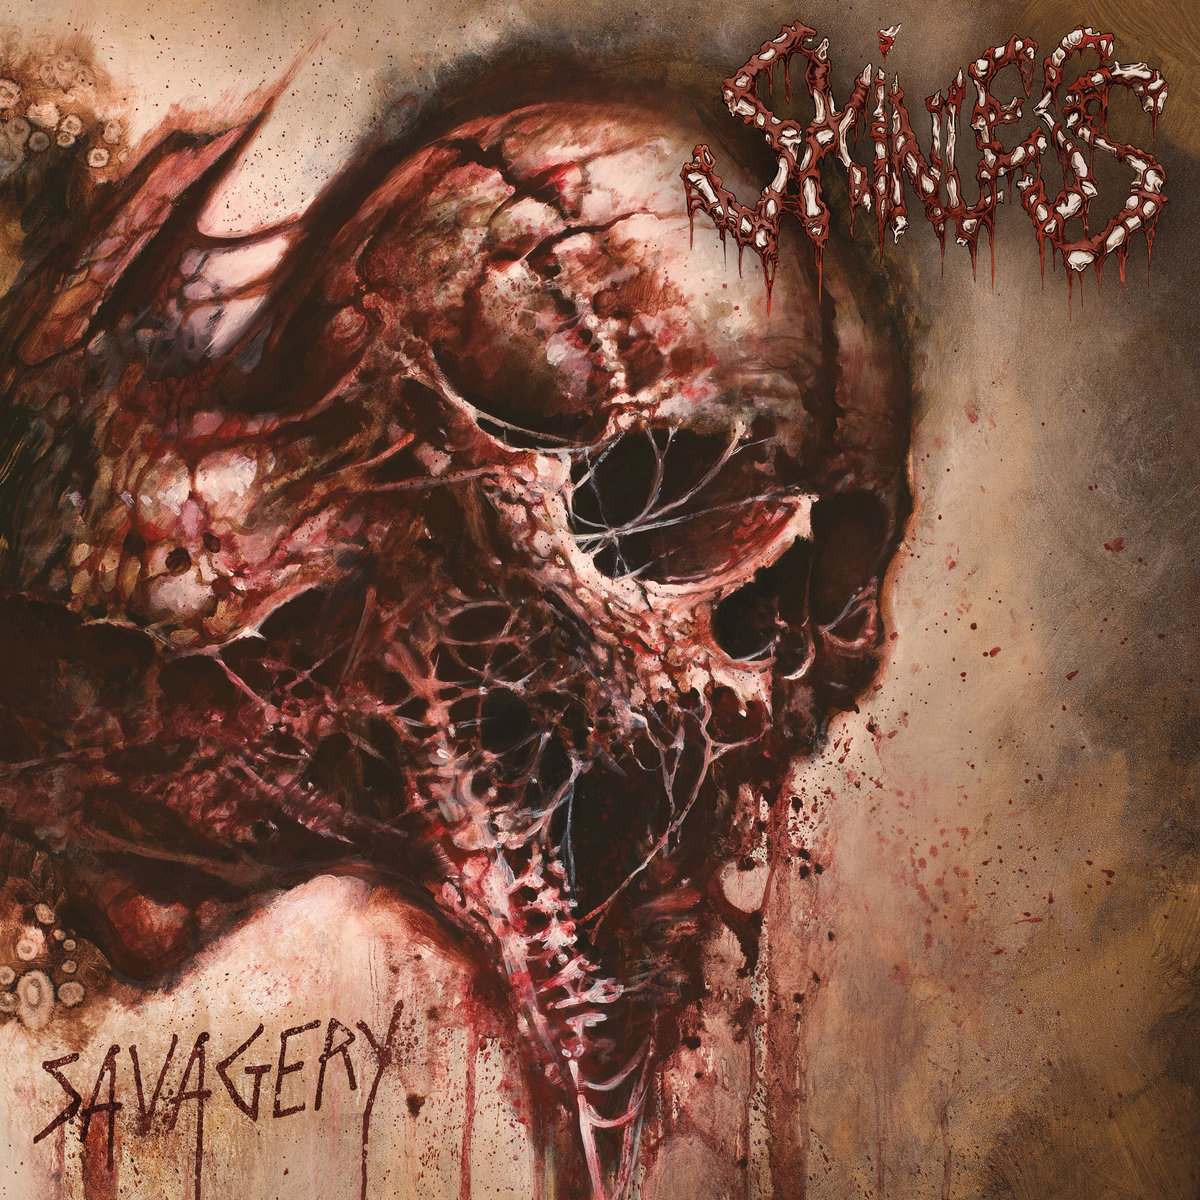 skinless-savagery.jpg